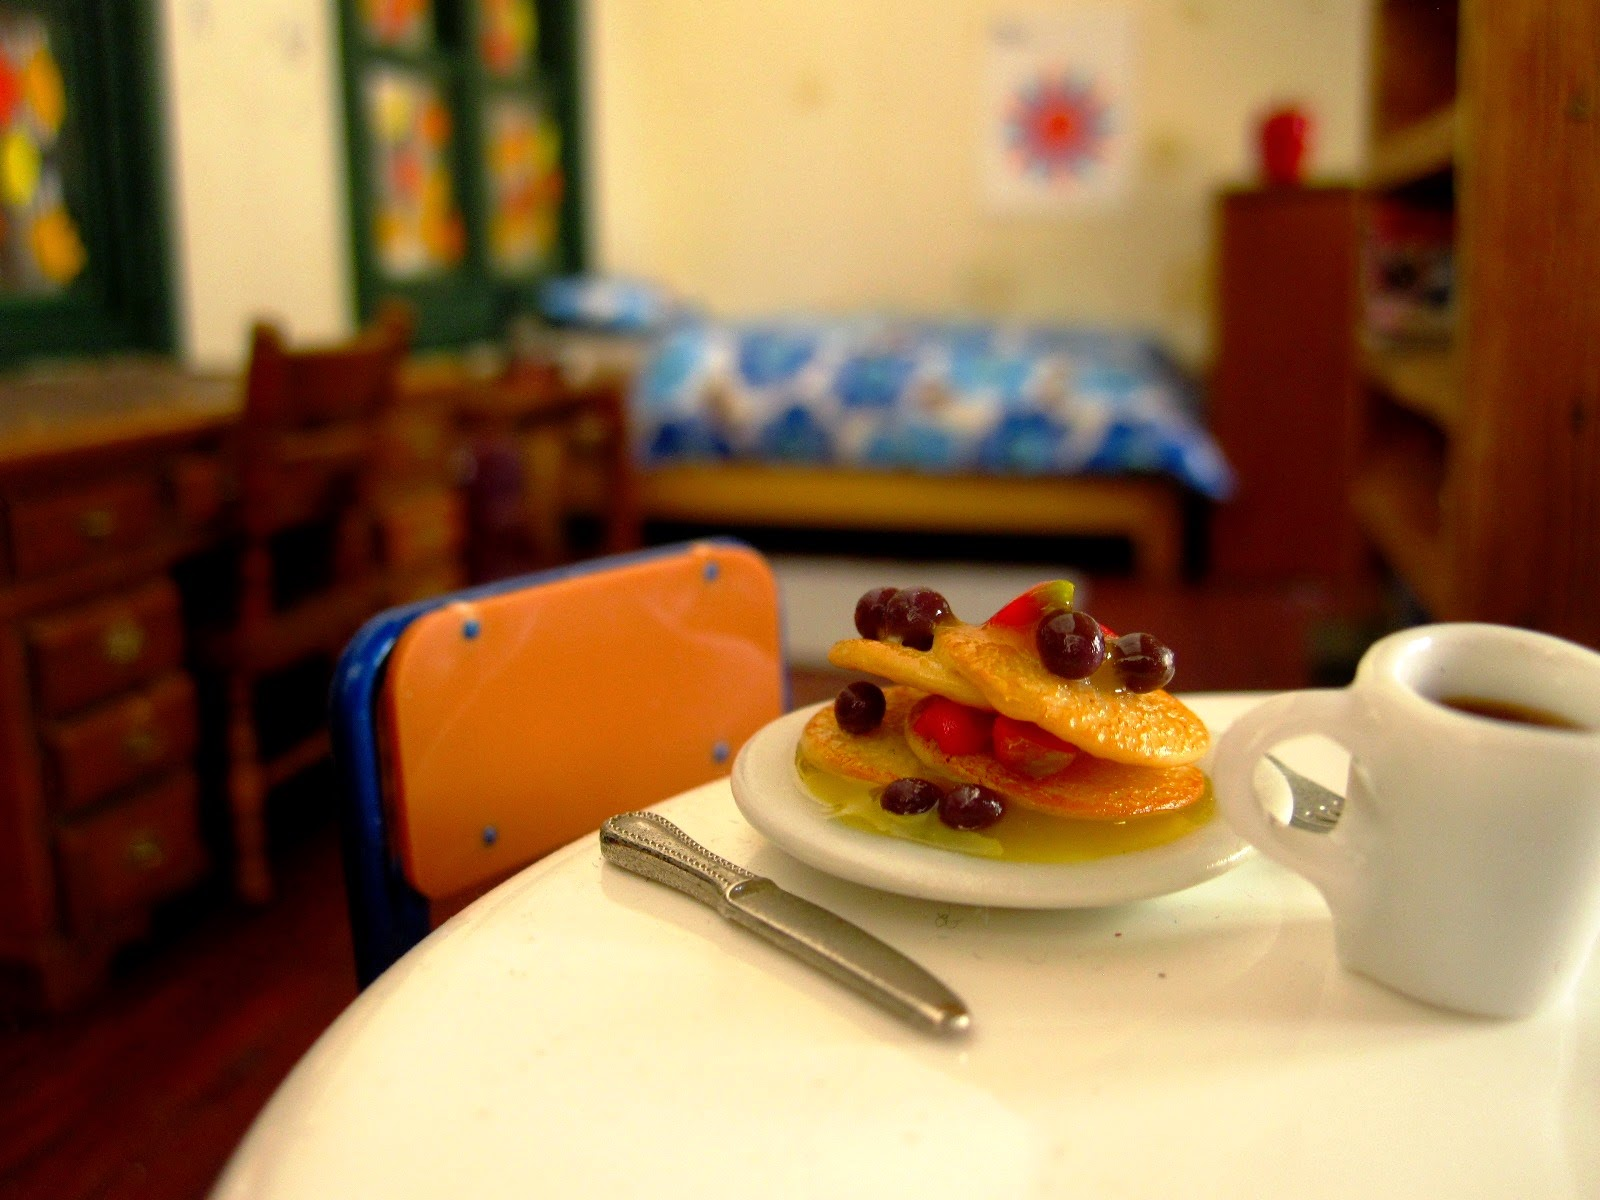 Dolls house miniature brunch of berry pancakes and coffee.